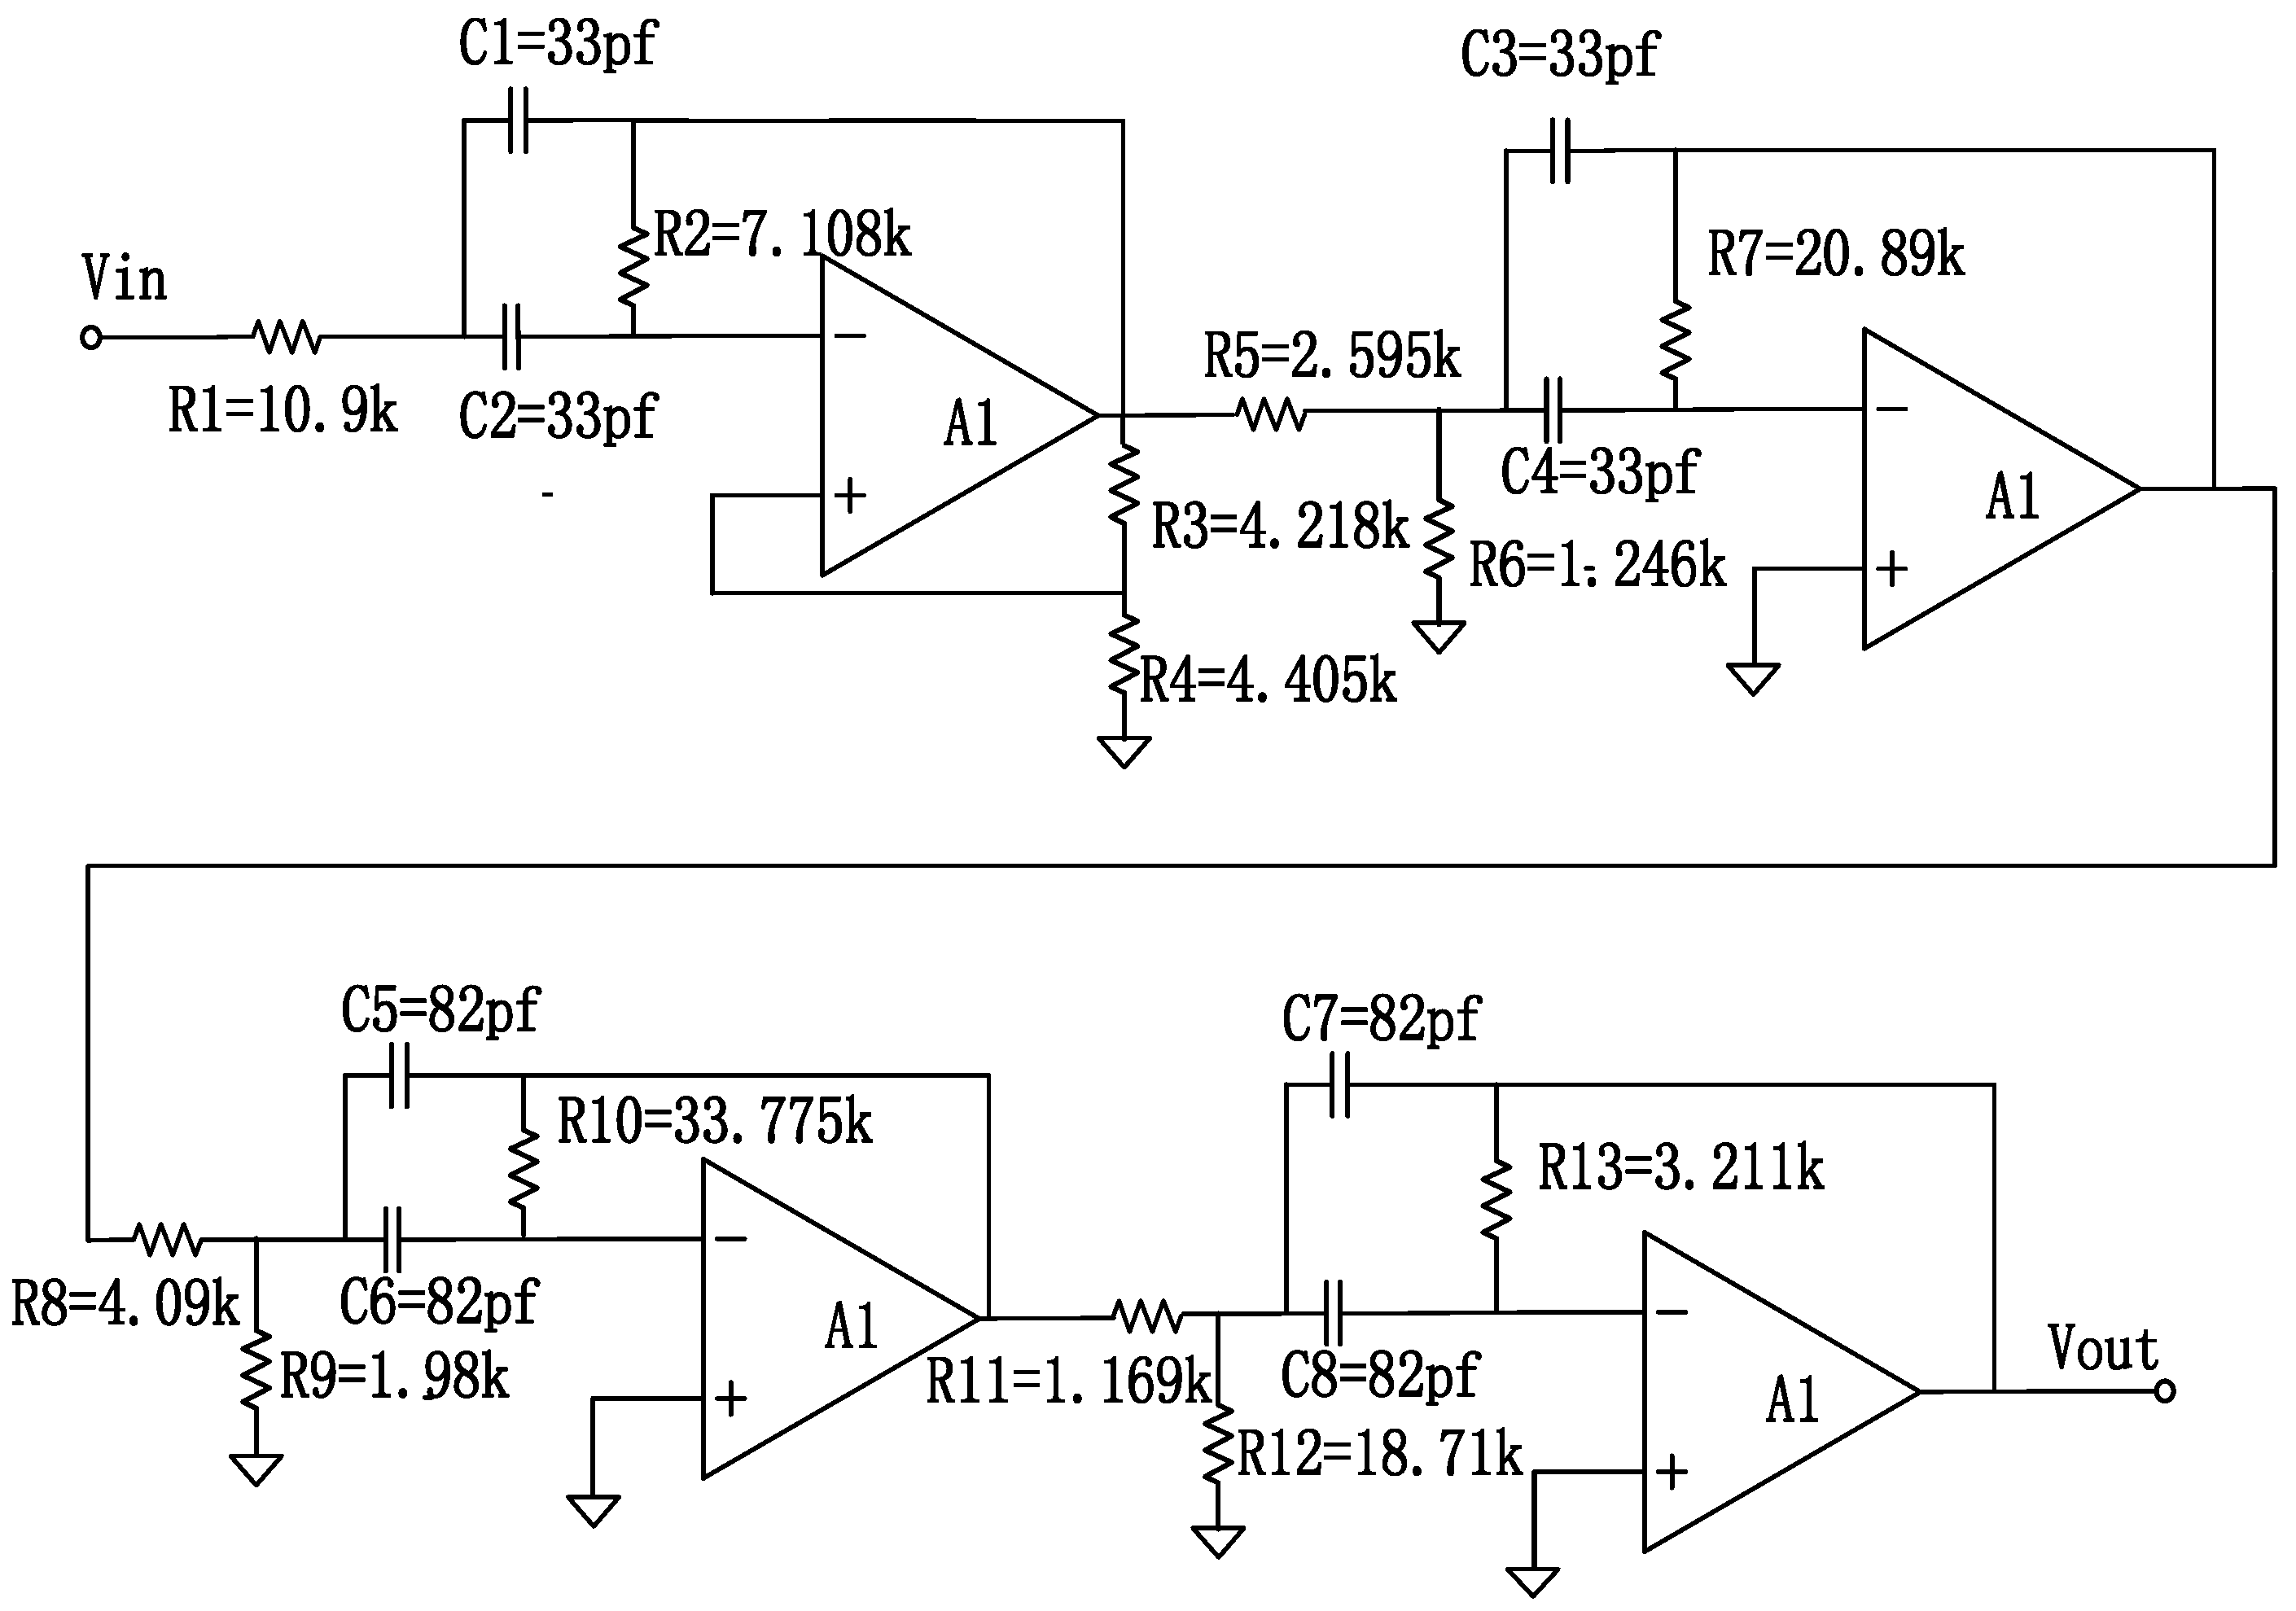 Sensors | Free Full-Text | A Digital Lock-In Amplifier for ... on computer schematics, ulf receiver schematics, generator schematics, transformer schematics, ic circuit schematics, heathkit schematics, guitar schematics, valve schematics, robot schematics, modem schematics, radio schematics, speaker schematics, wire schematics, motor schematics, audio circuit schematics, led schematics, electronic circuit schematics, orange amp schematics, astable multivibrator schematics, tube schematics,